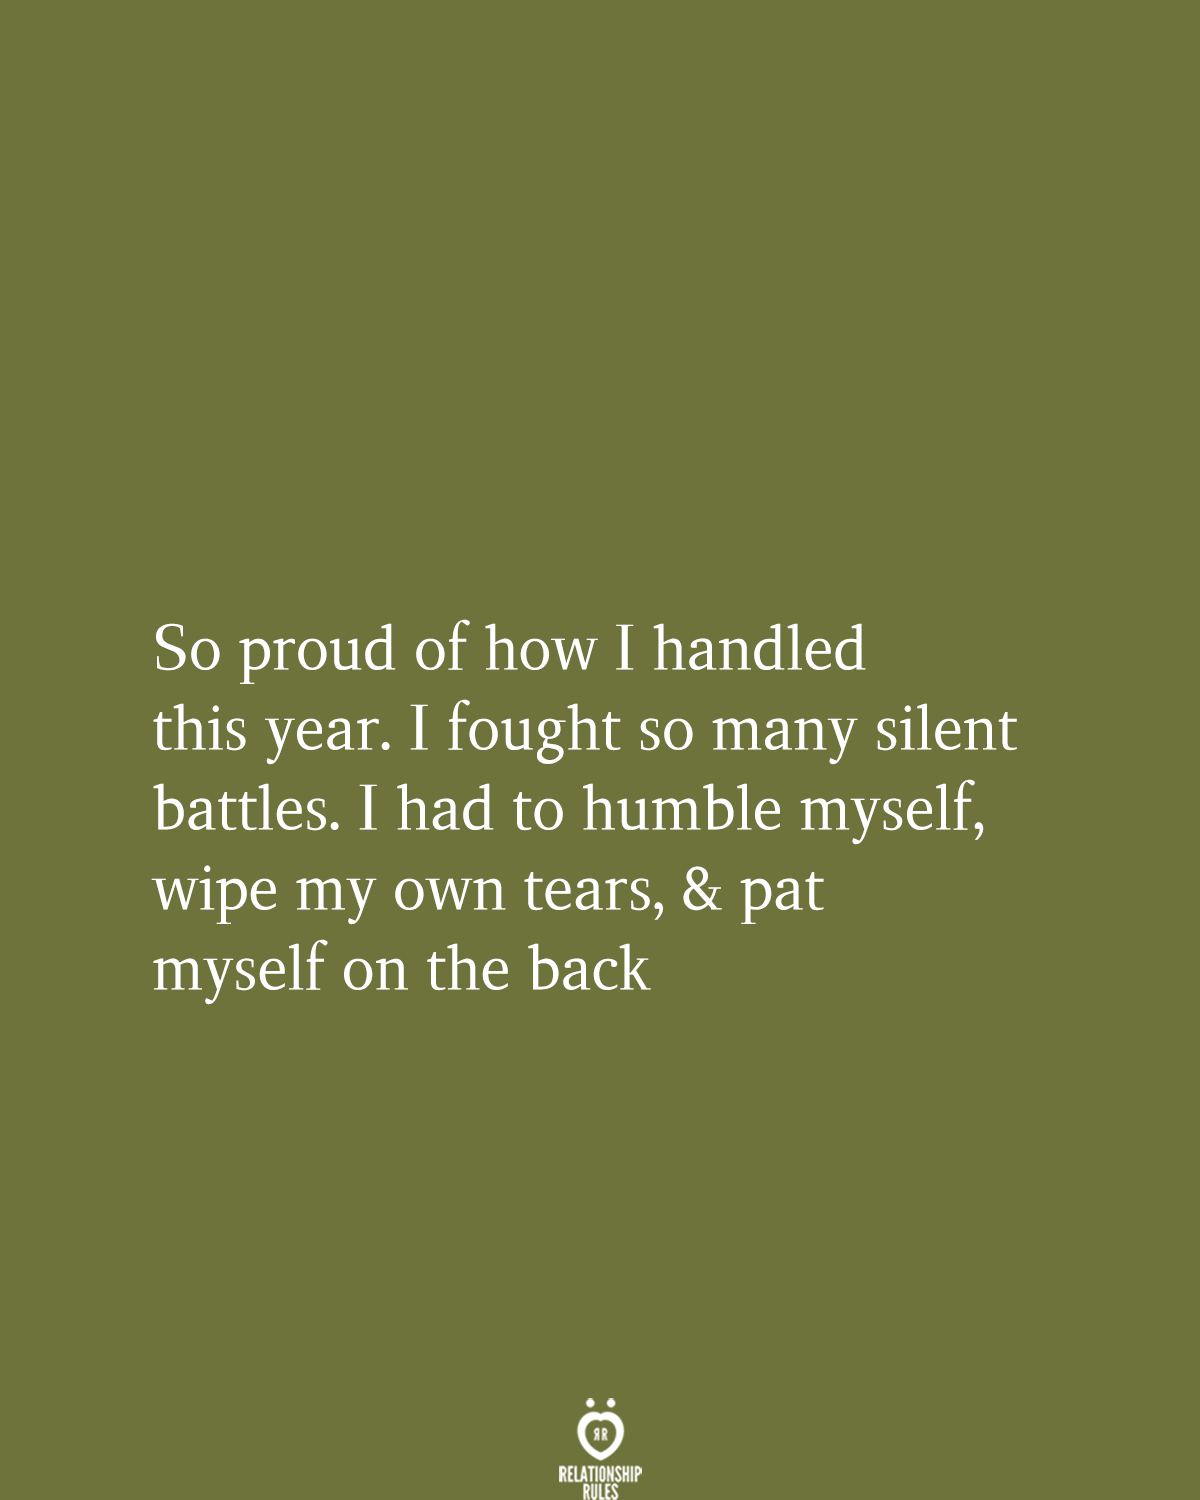 So Proud Of How I Handled This Year Tears Quotes Proud Of Myself Quotes Proud Quotes